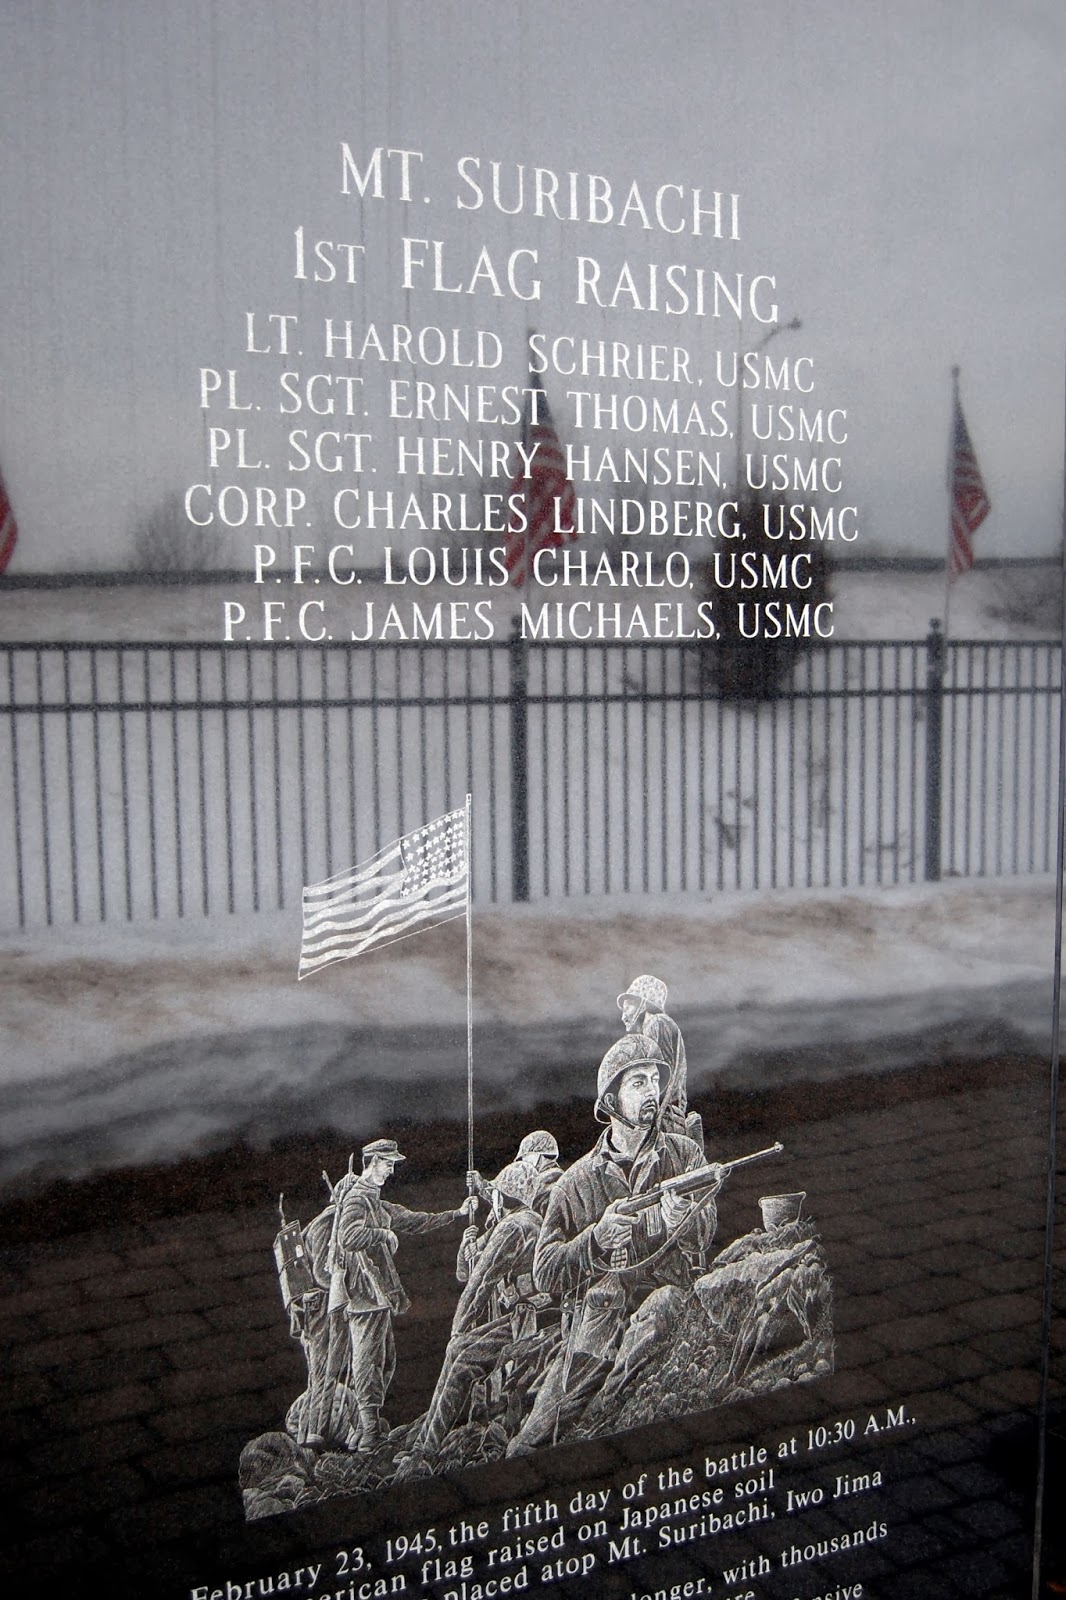 detail on the monument to honor the first flag raisers